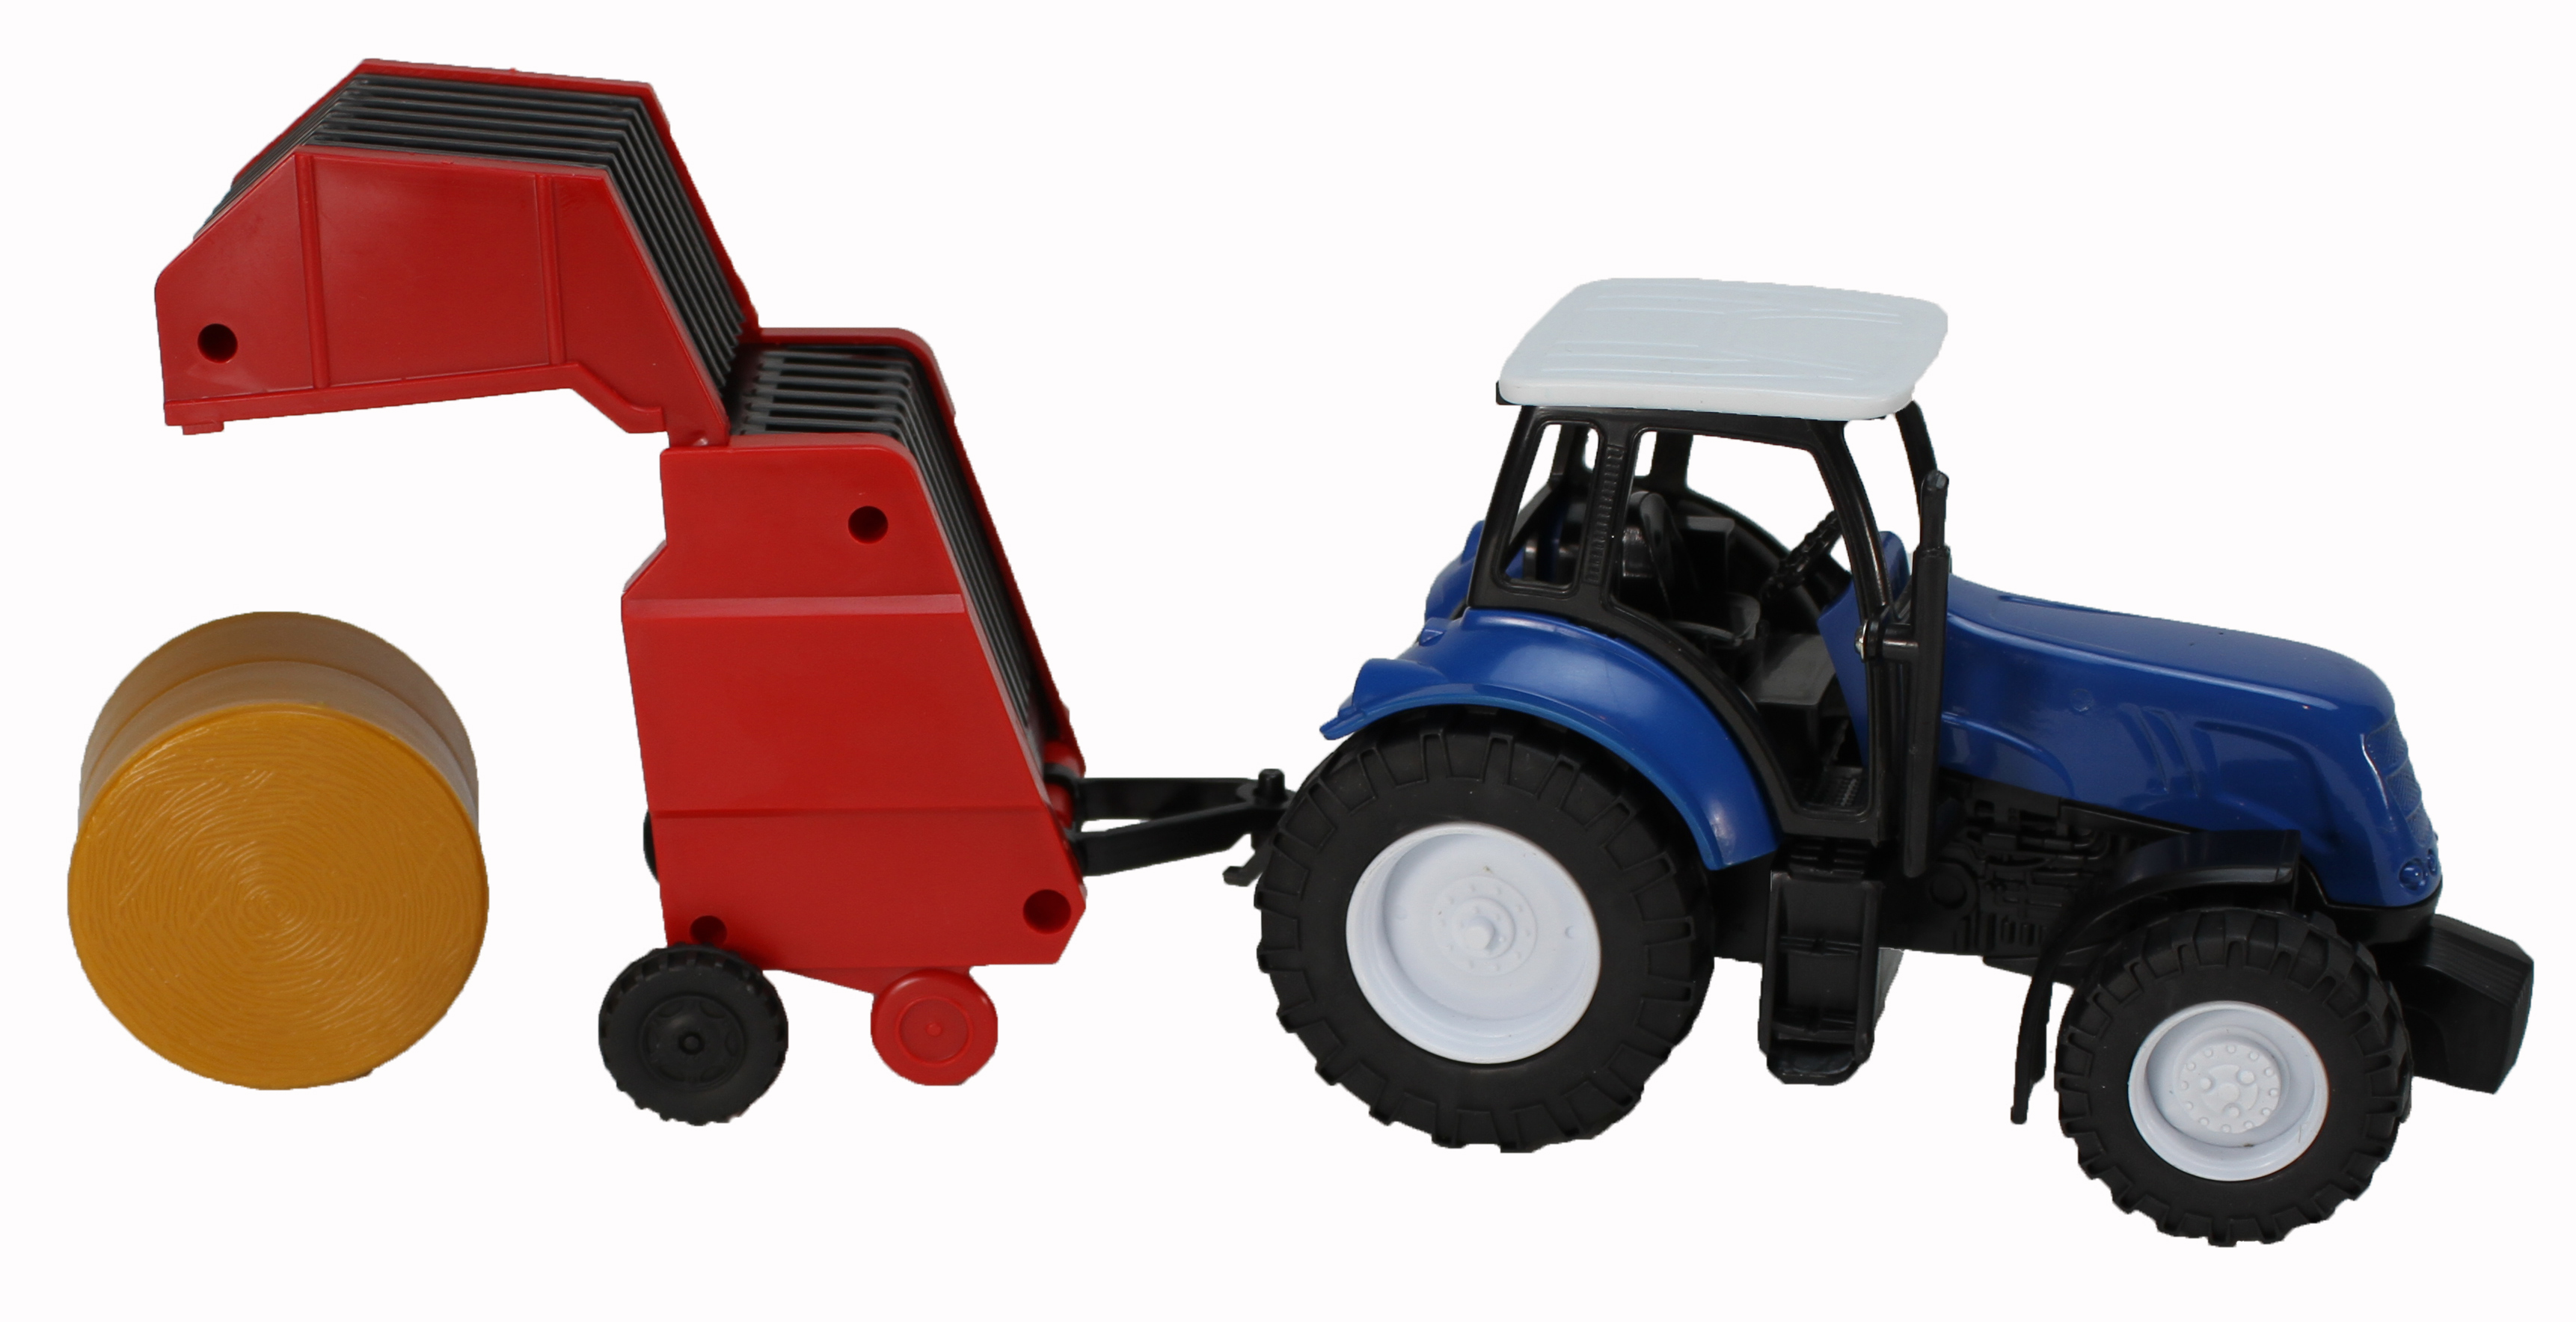 Blue Farm Tractor with Round Hay Baler by NewRay